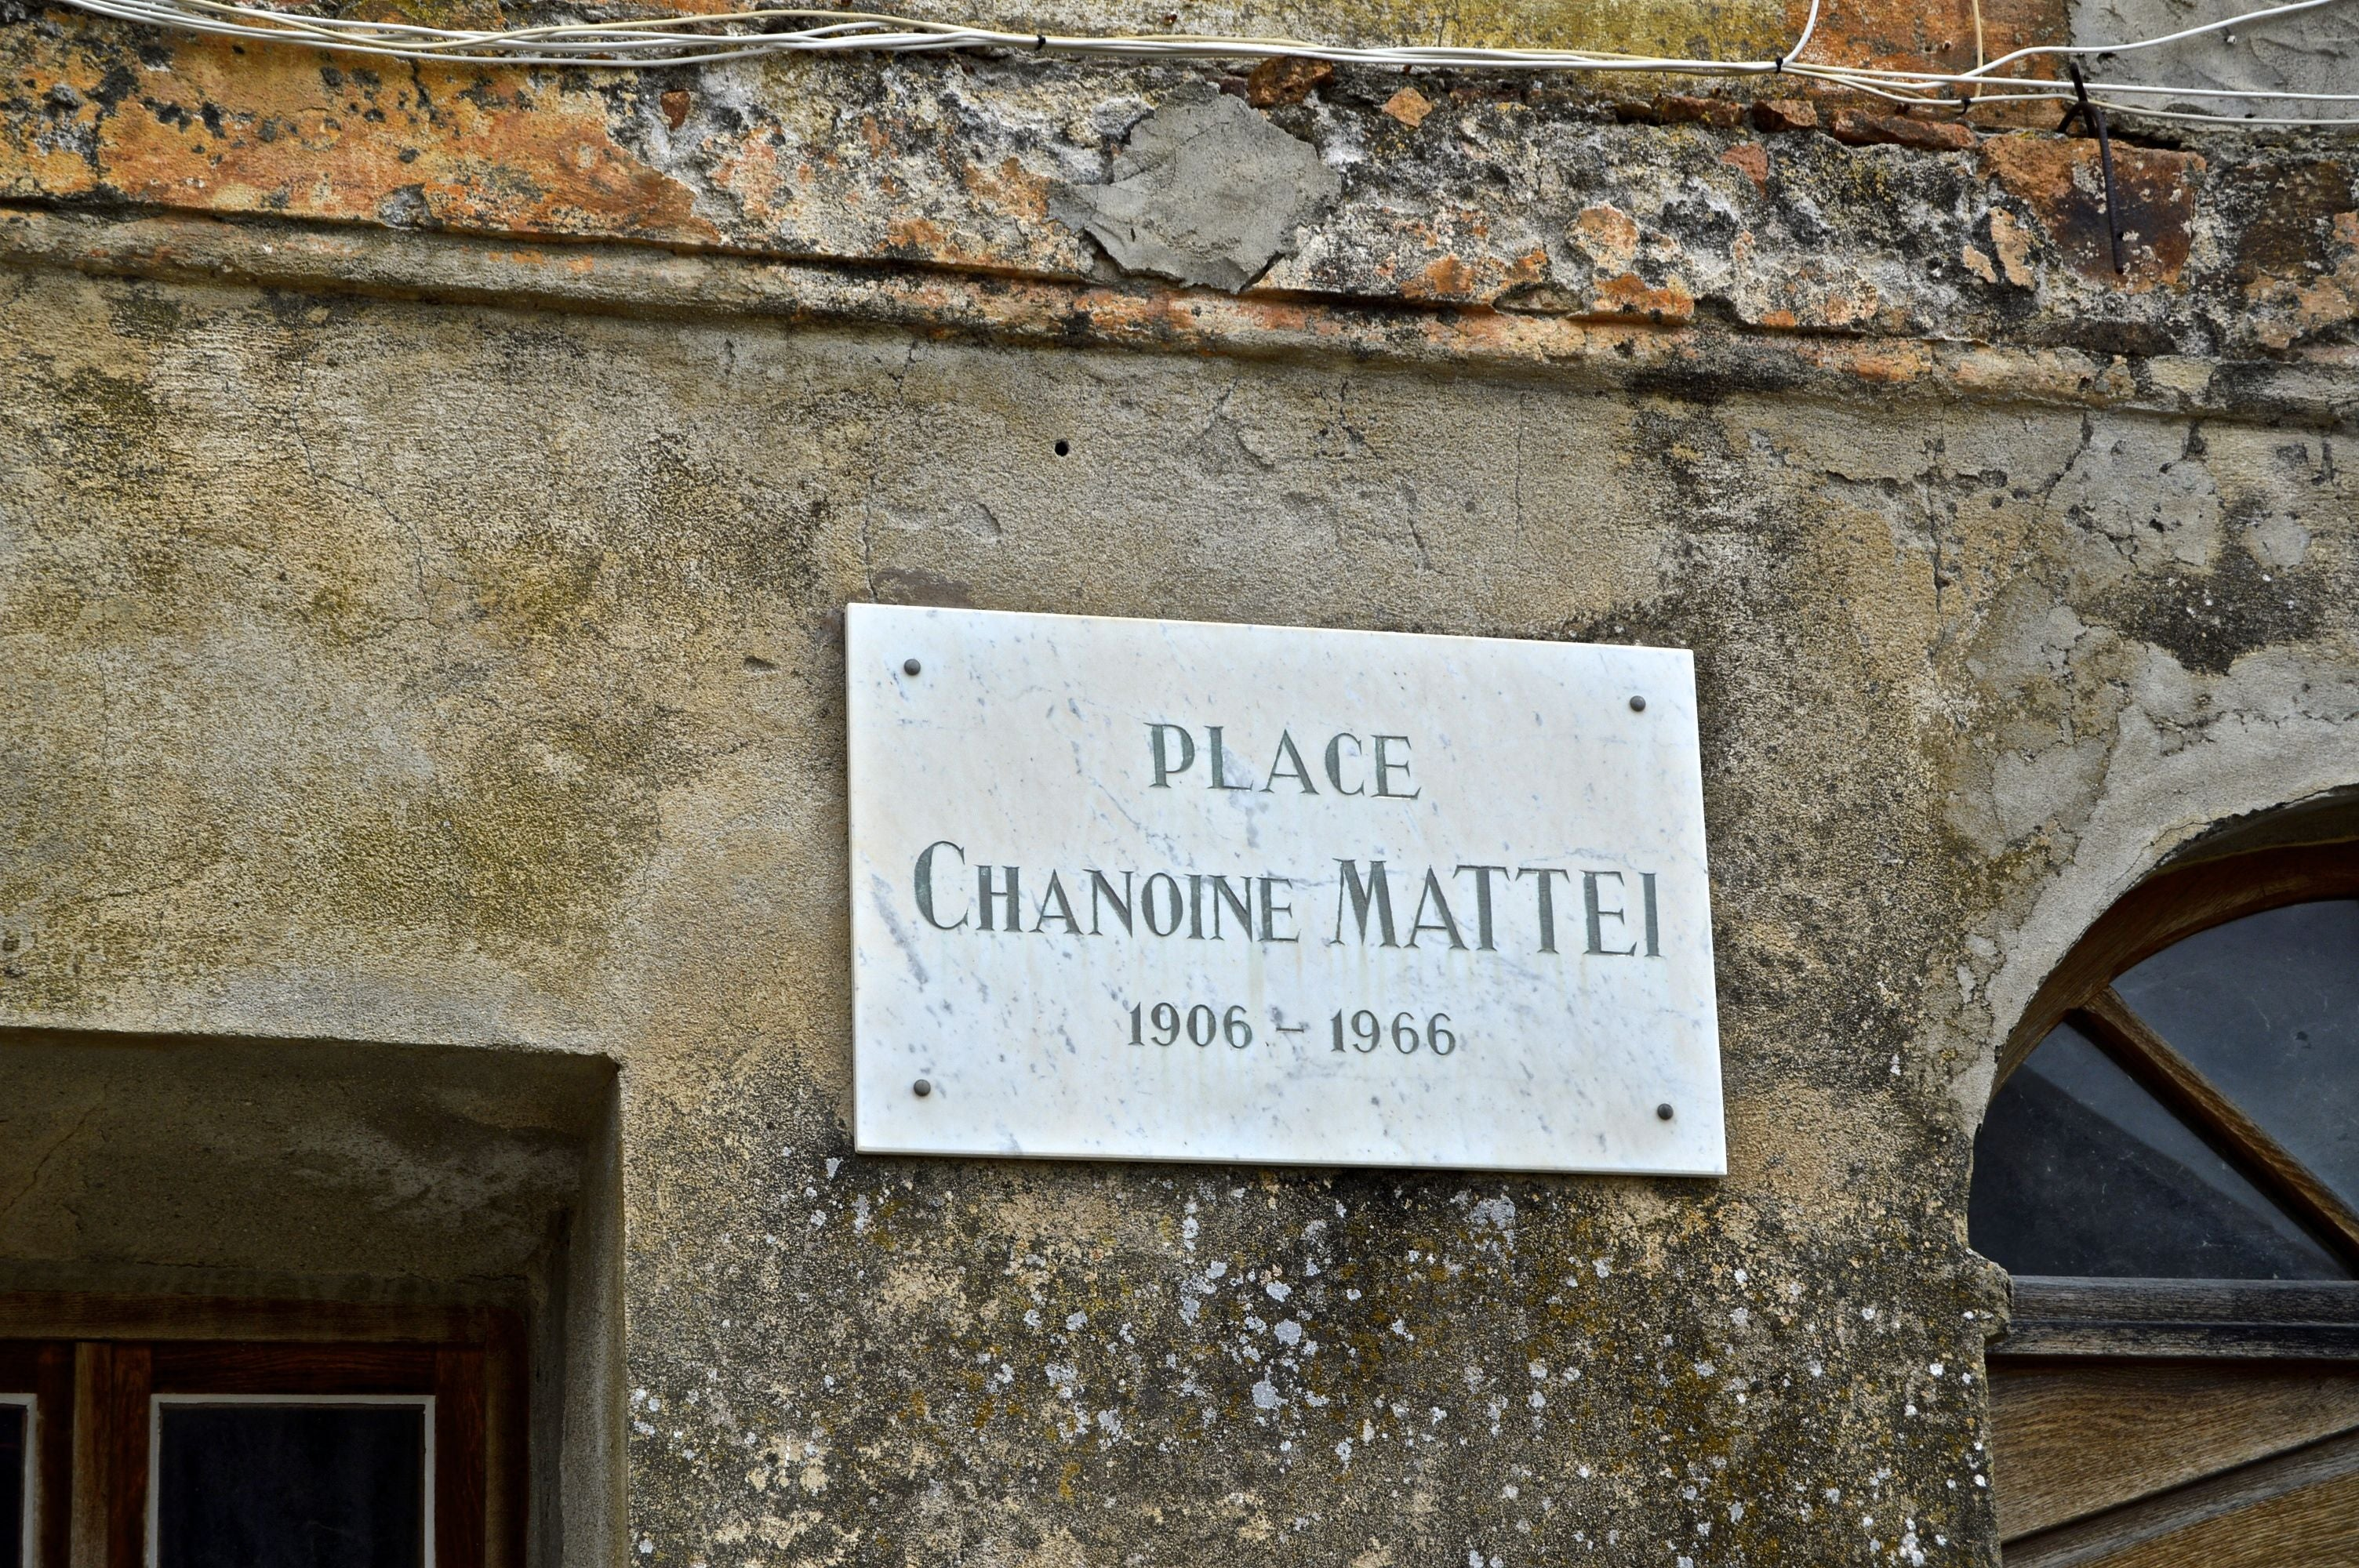 Signage in Plaza Chanoine Mattei